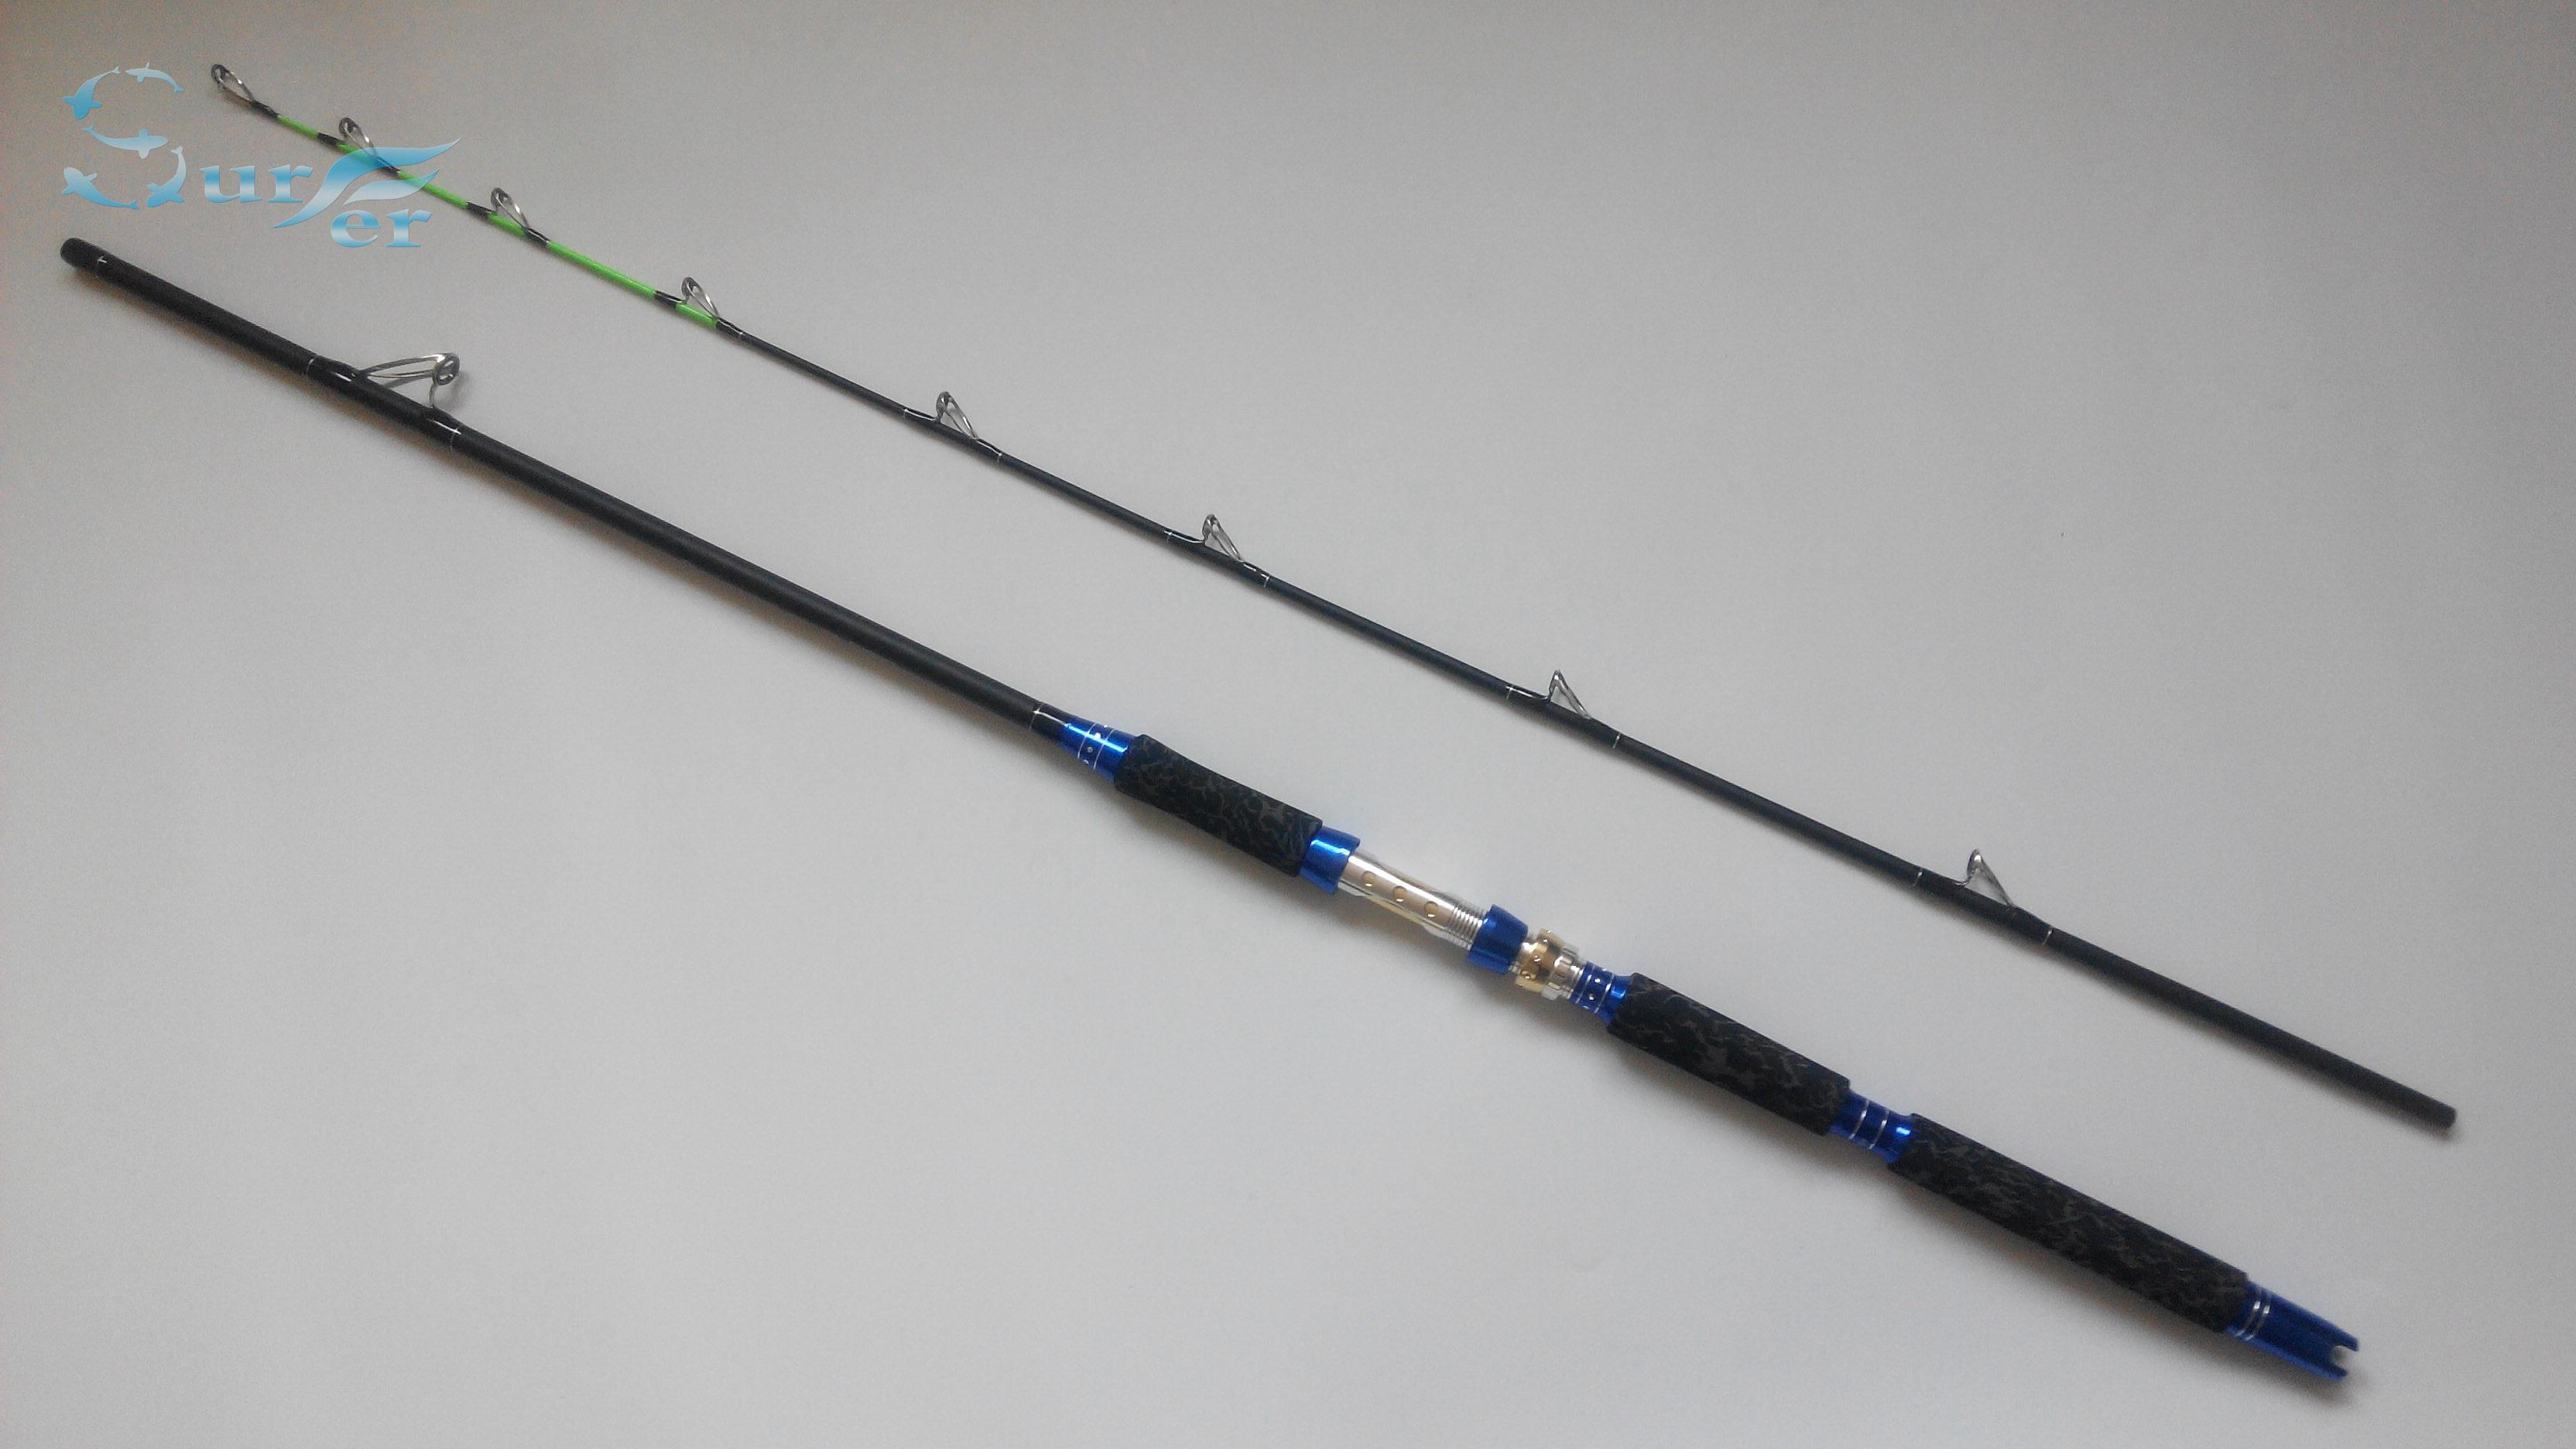 Gigging trolling spinning boat fishing rod carbon fibre 1 Trolls fishing pole